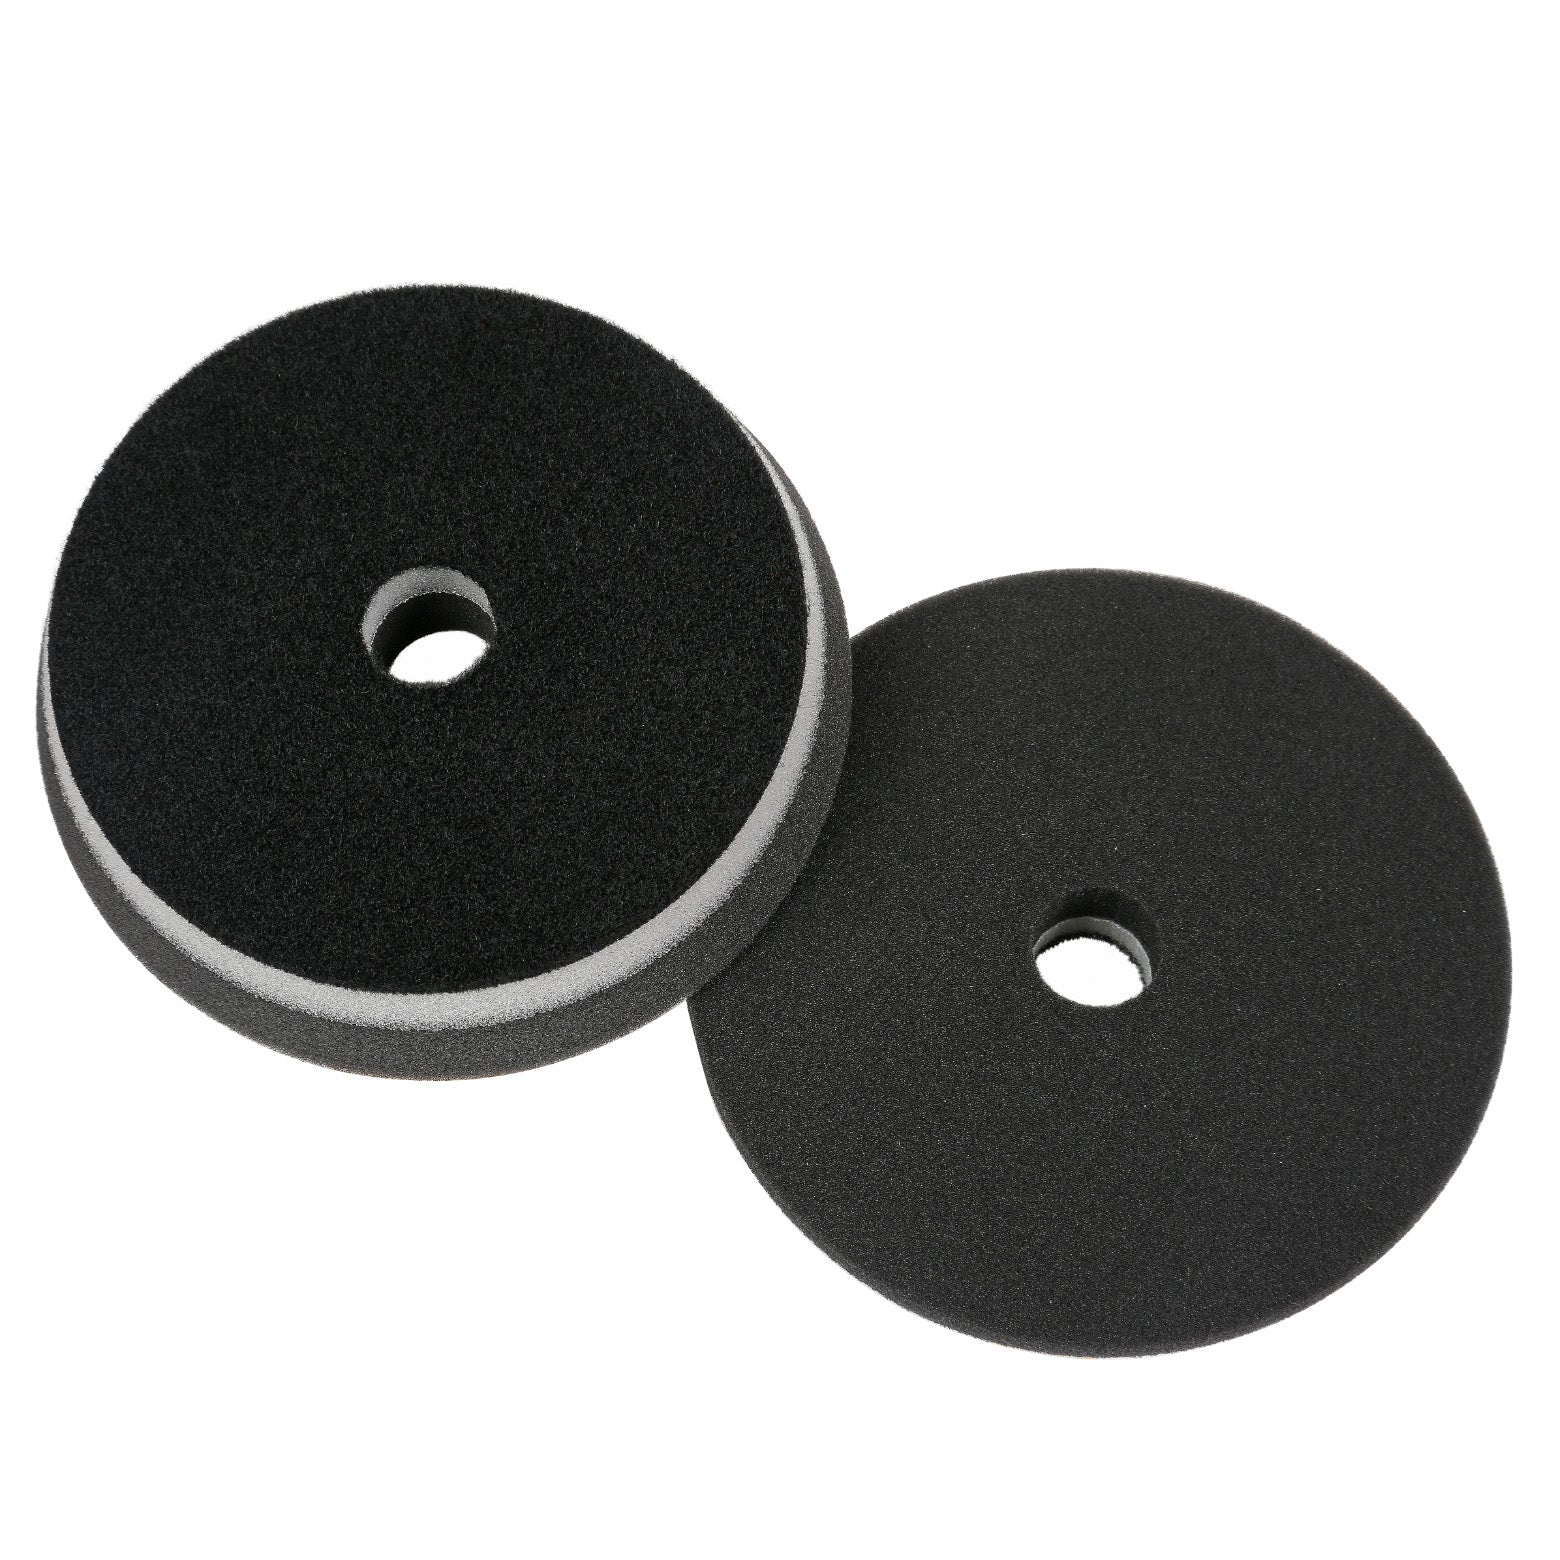 Lake Country Heavy Duty Orbital Pad - Black (Finishing) (4390852853809)